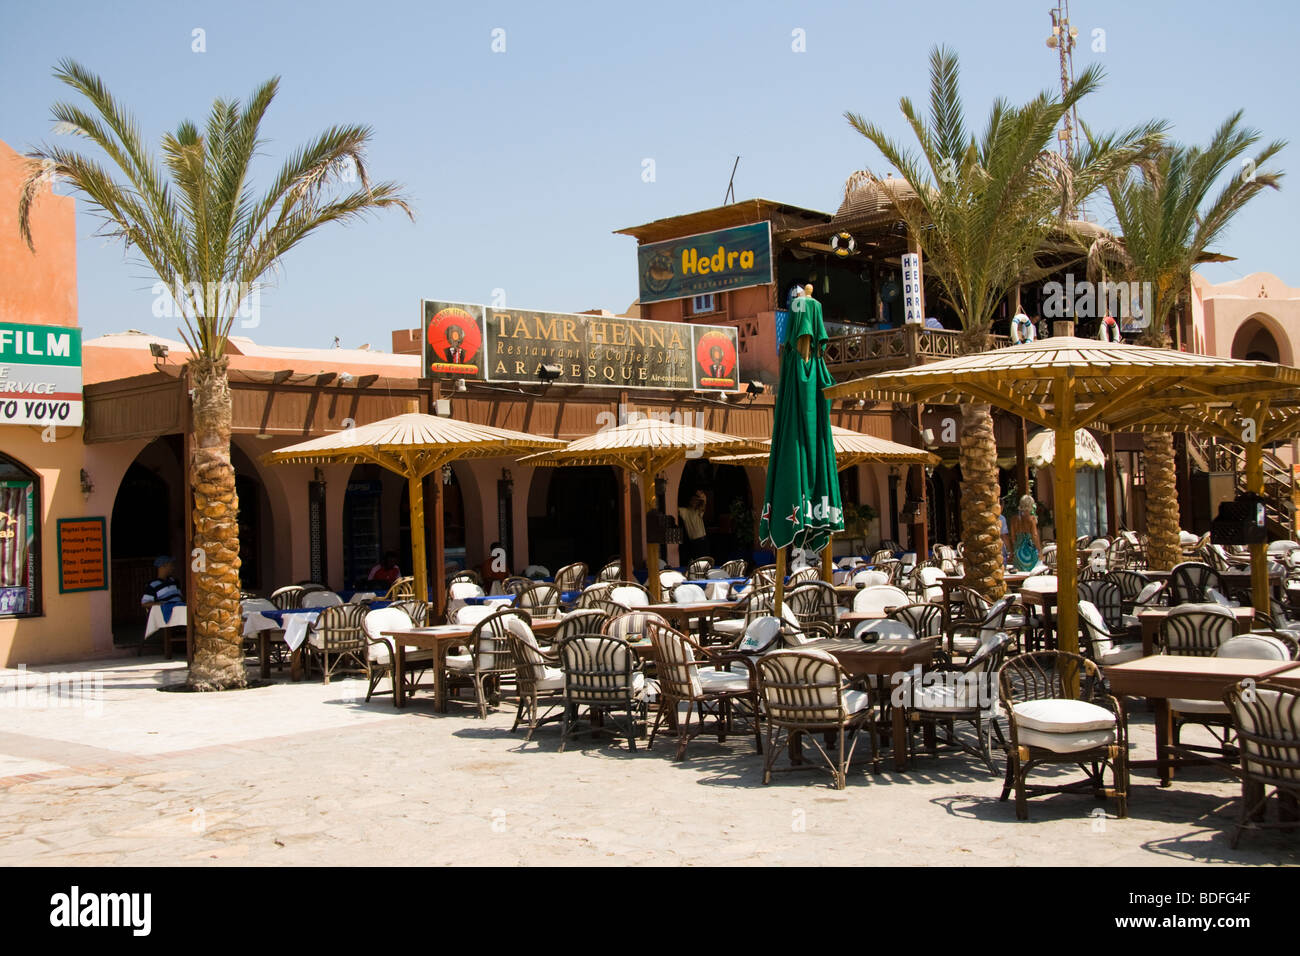 Restaurants in the Tamr Henna area of El Gouna, Red Sea, Egypt - Stock Image